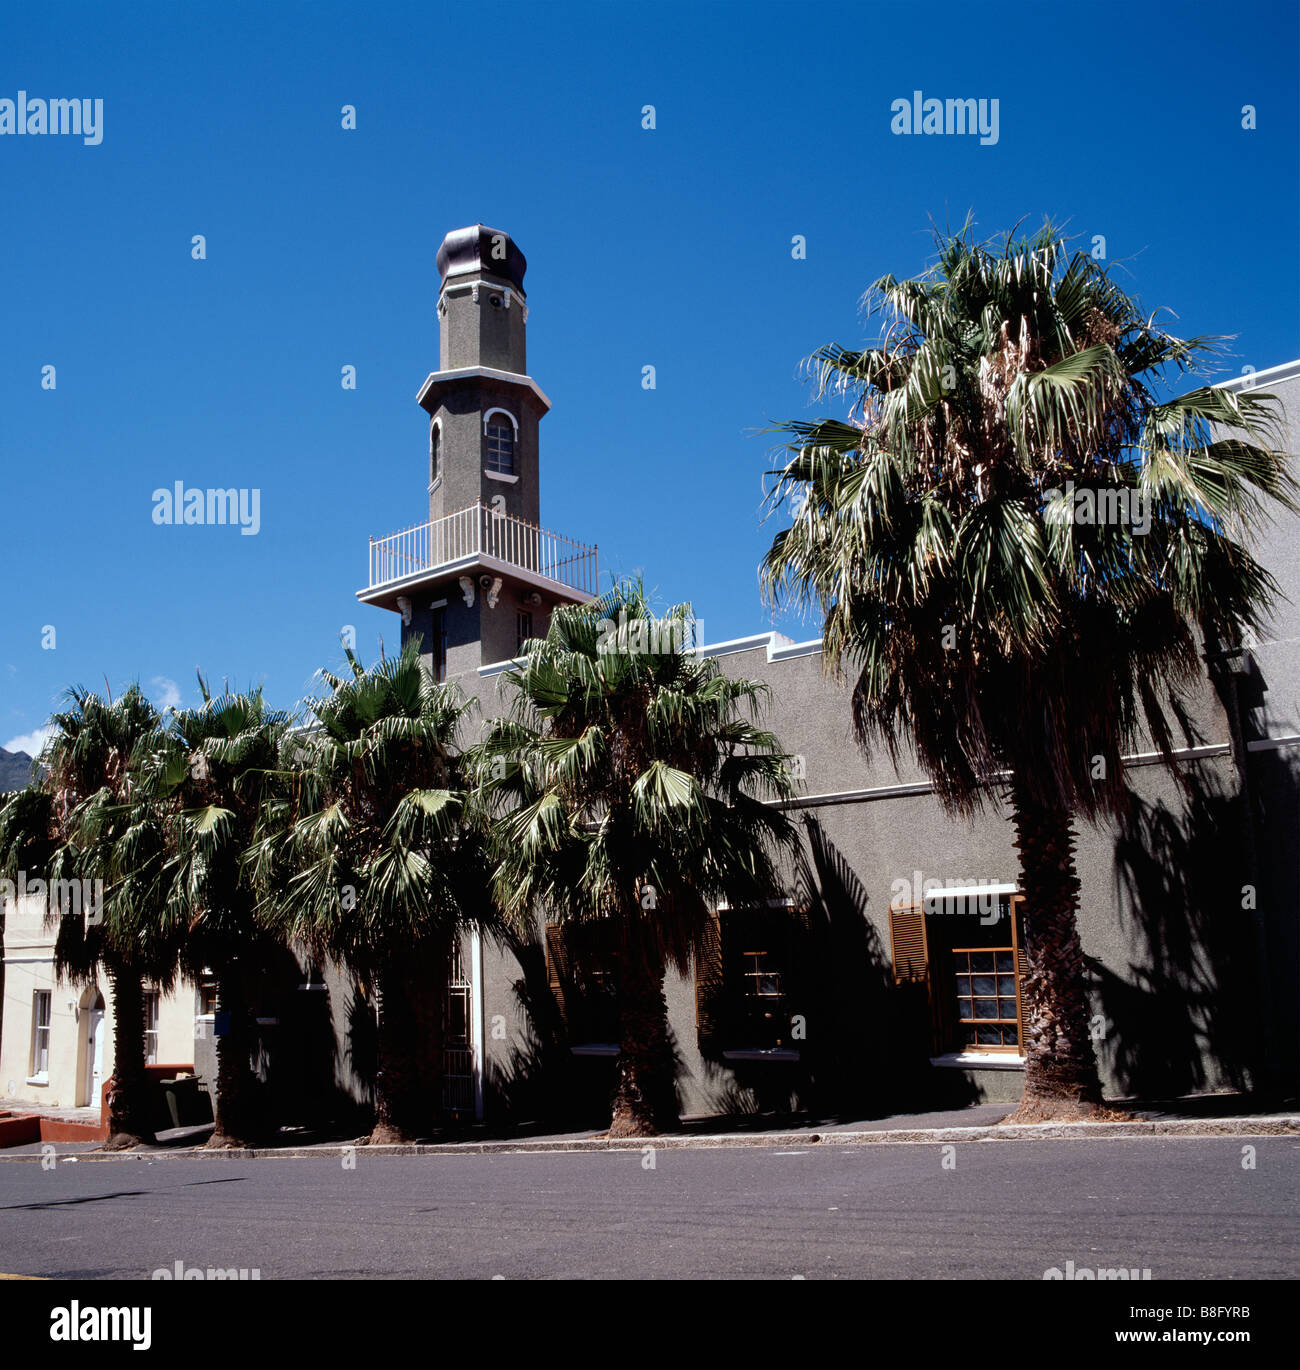 Town cape dating muslim sites